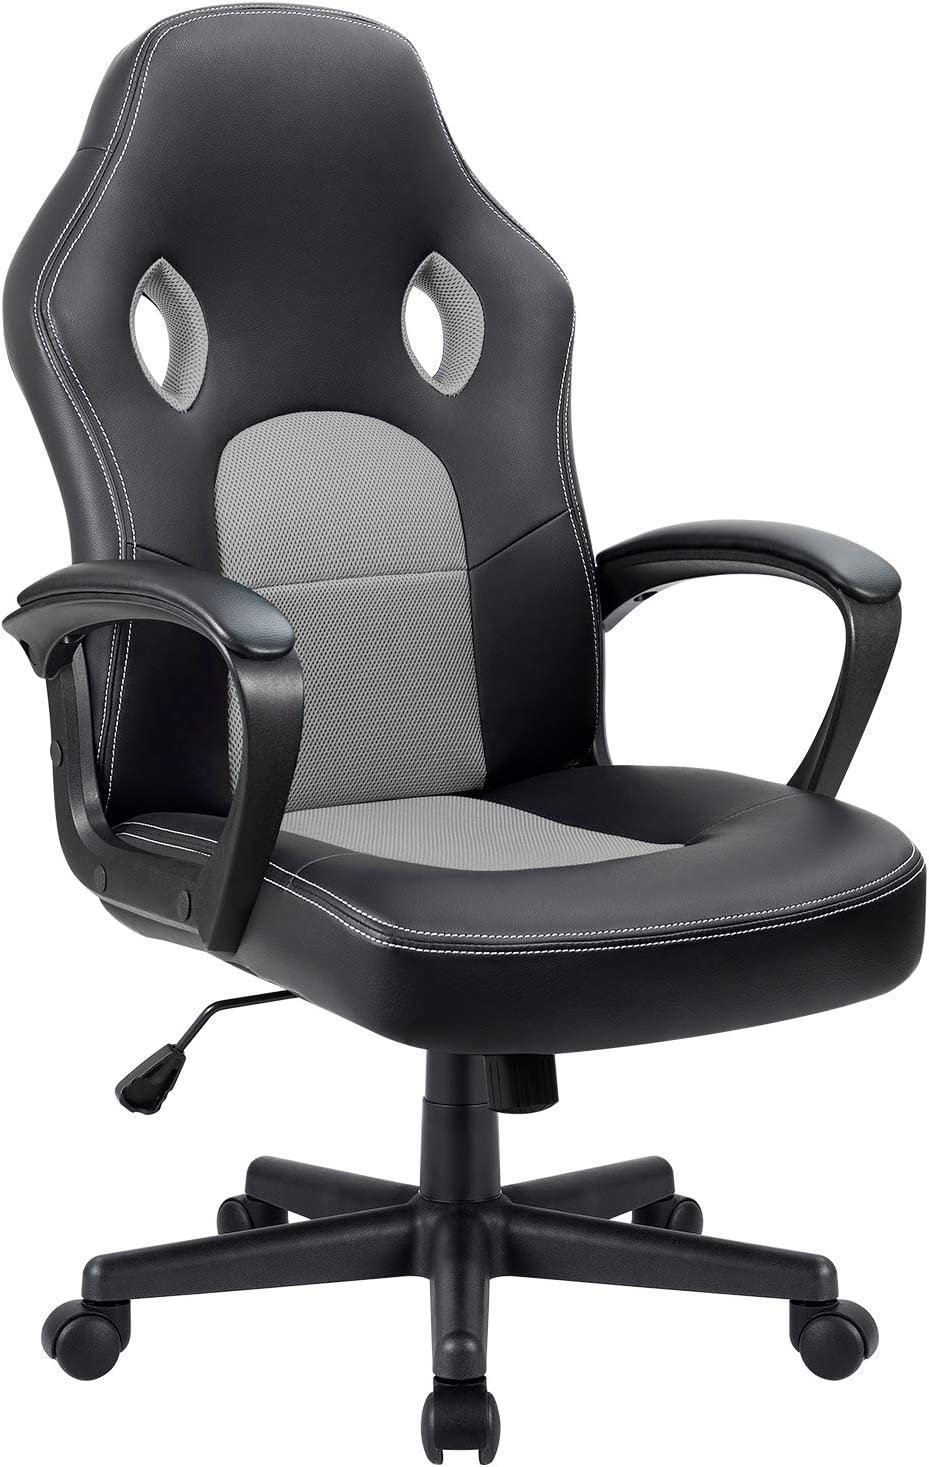 Furmax Office and Gaming Chair Desk Chair